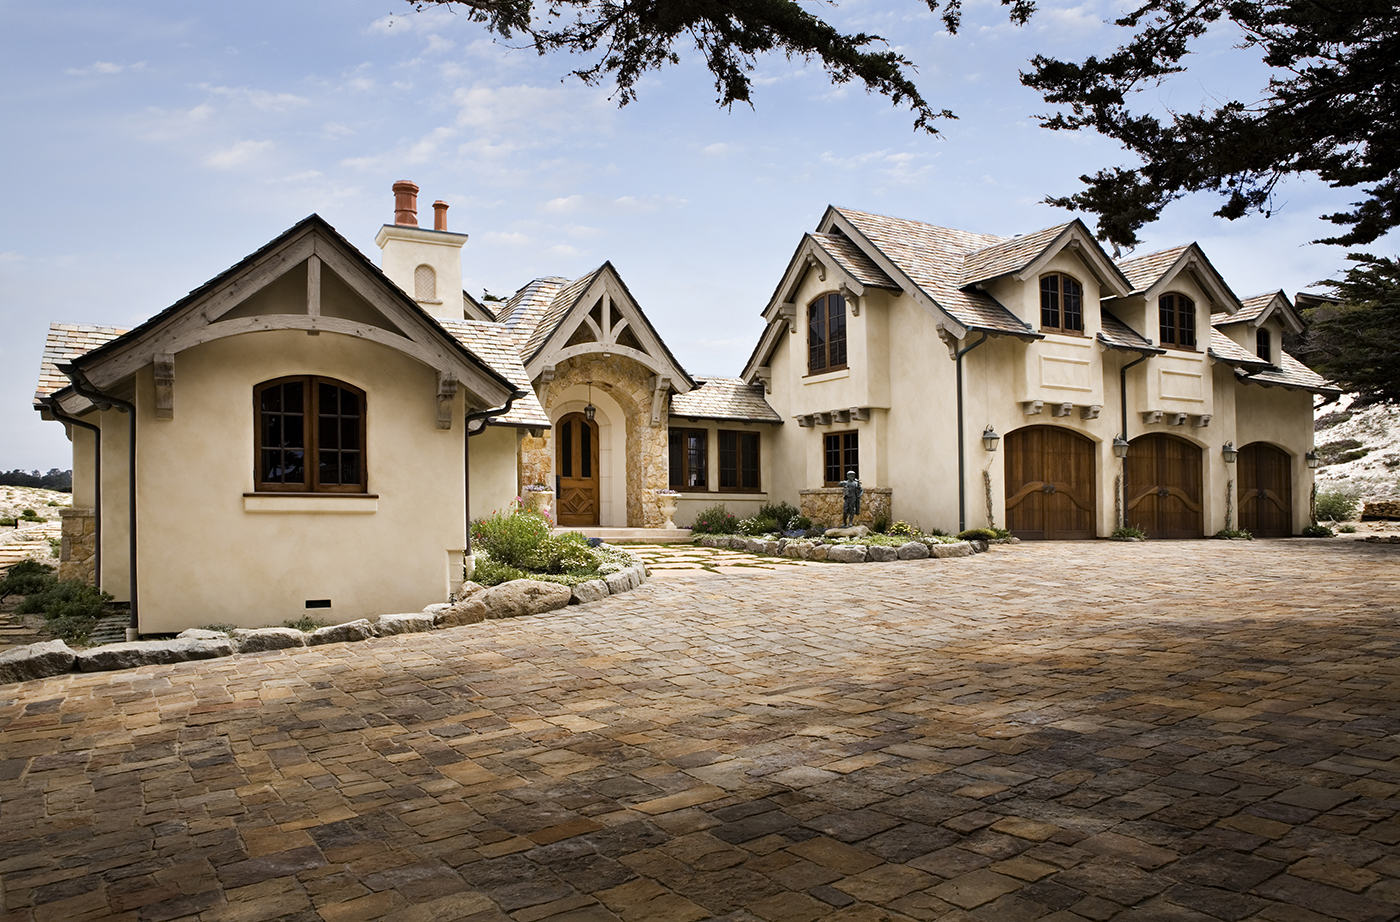 3-Smith-Entry-redwood half timber French Country-pavers-clay chimney pots.jpg